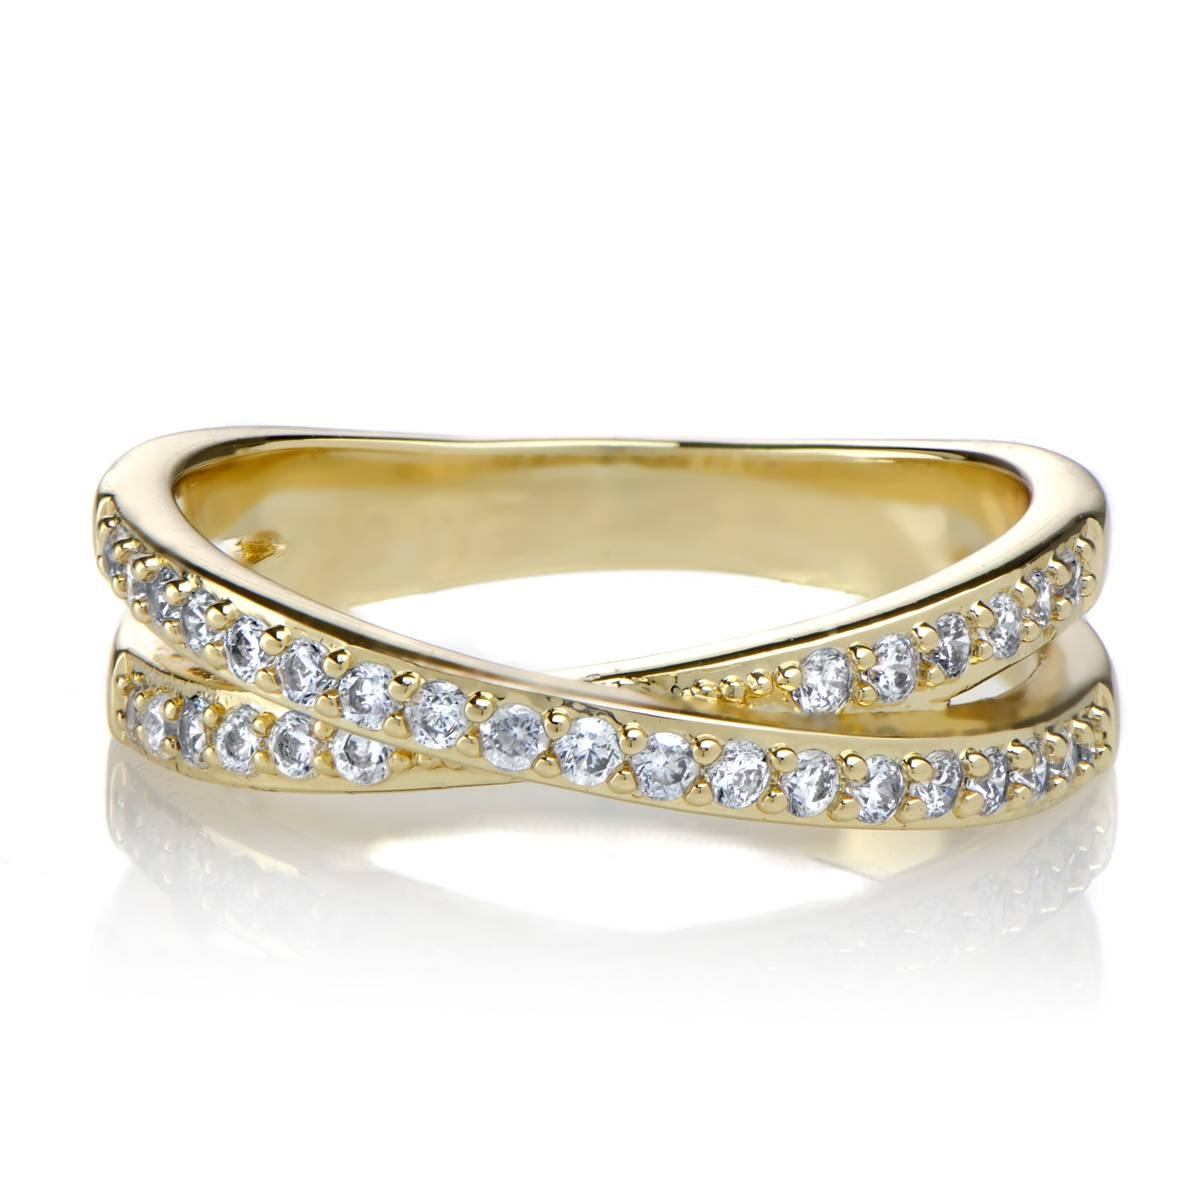 Gold Cz Rings (View 8 of 25)